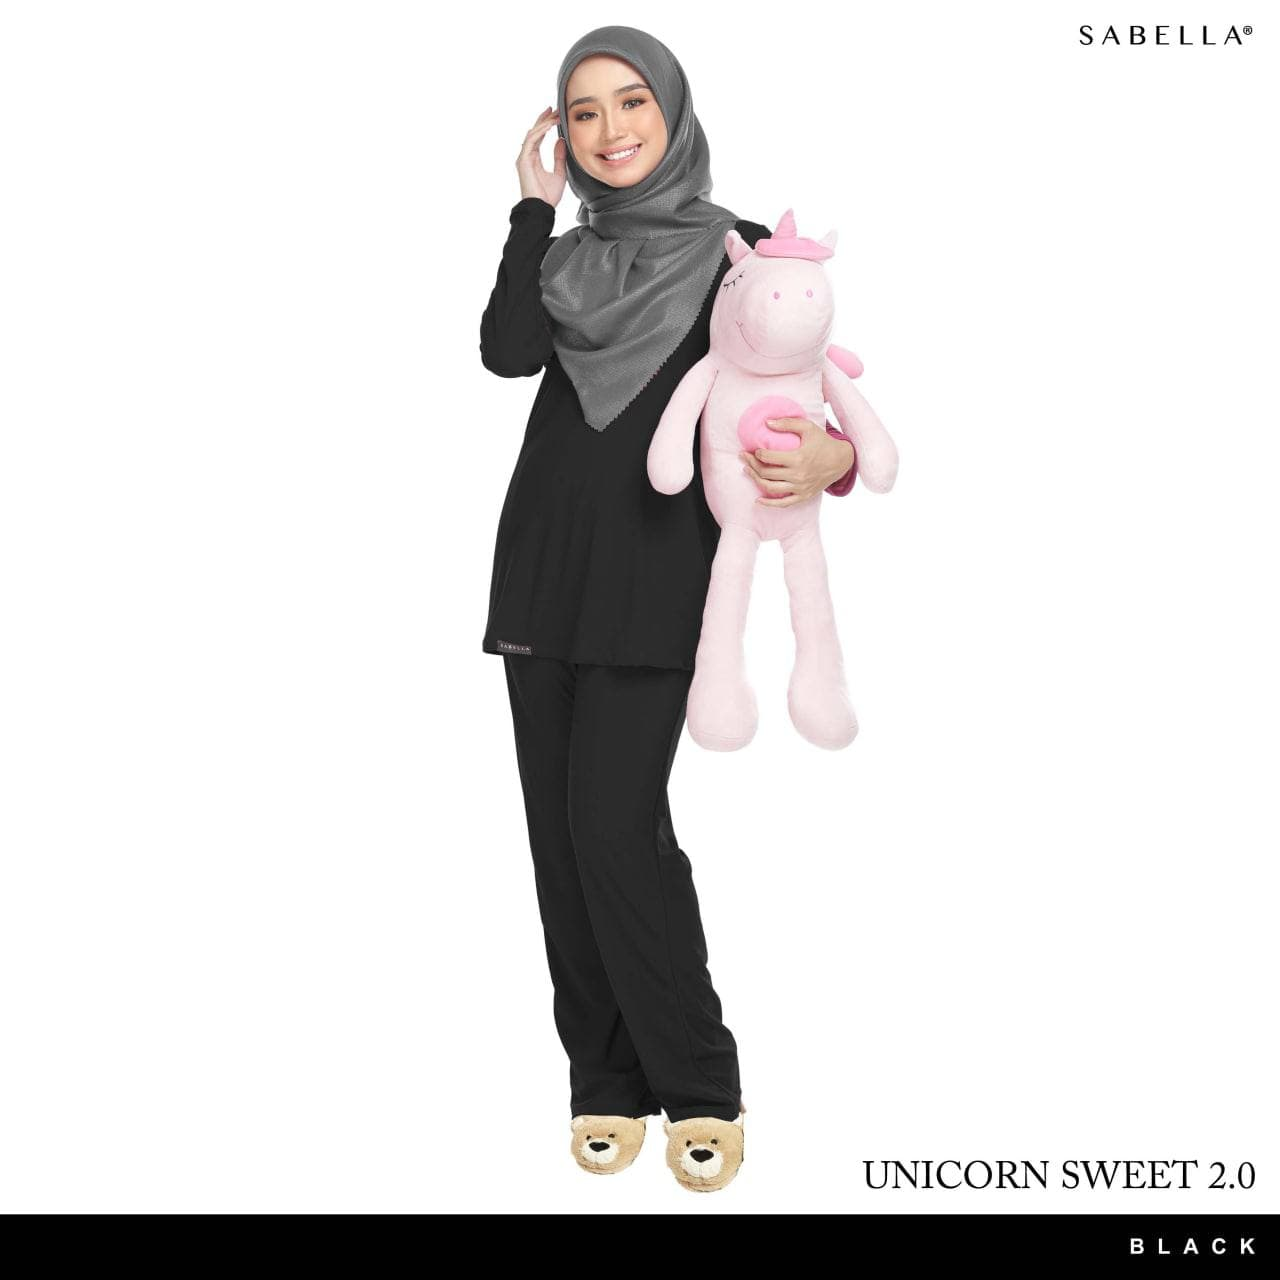 Unicorn Sweet 2.0 Black